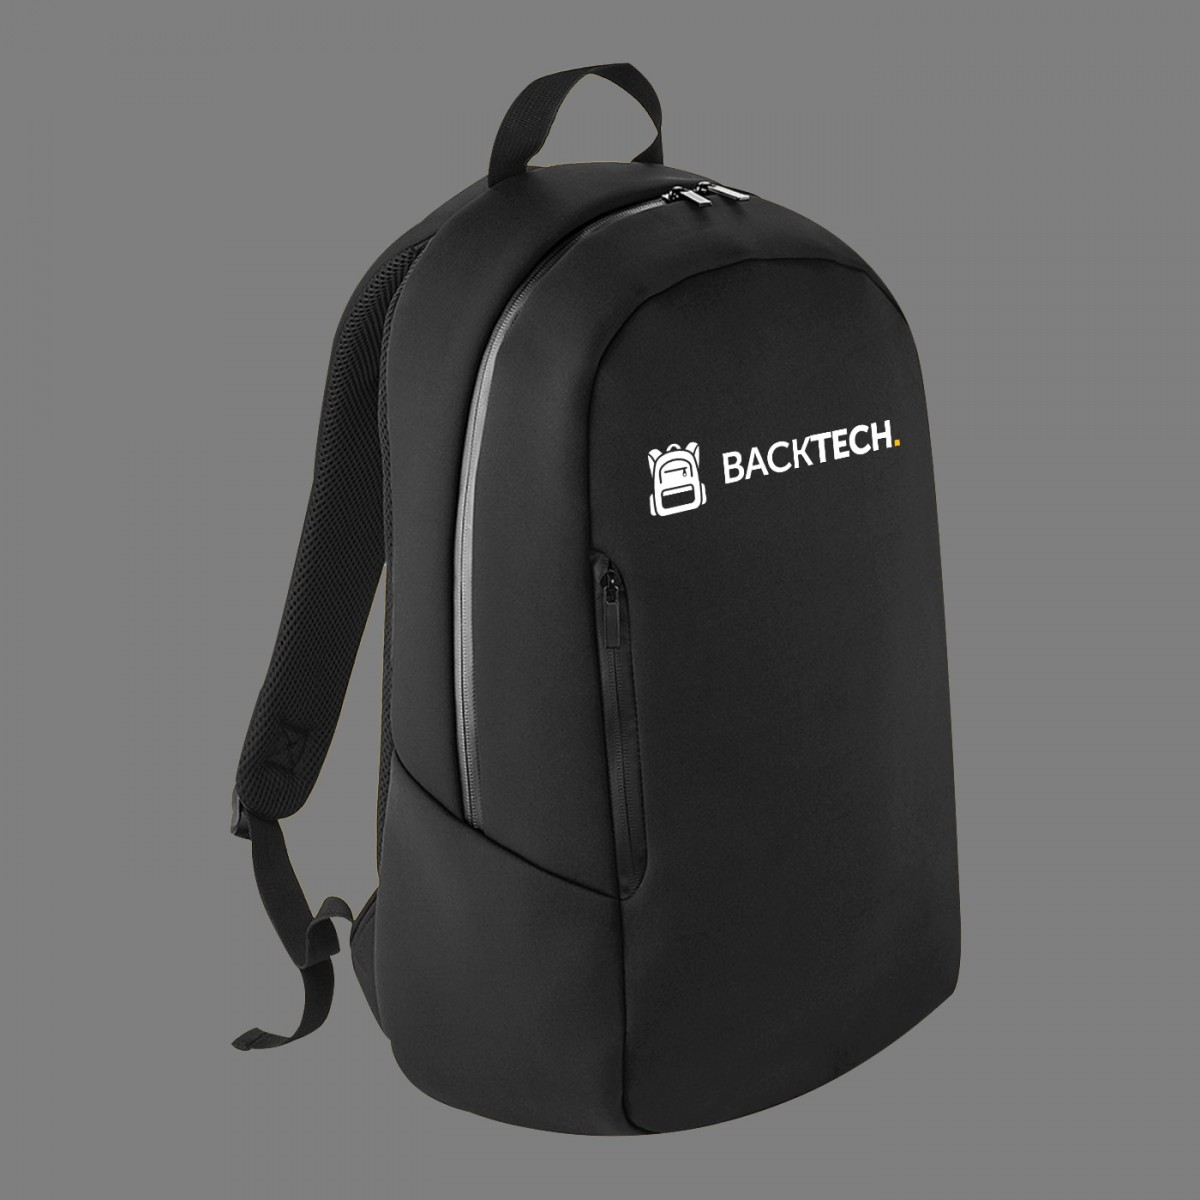 Backpack - Backtech